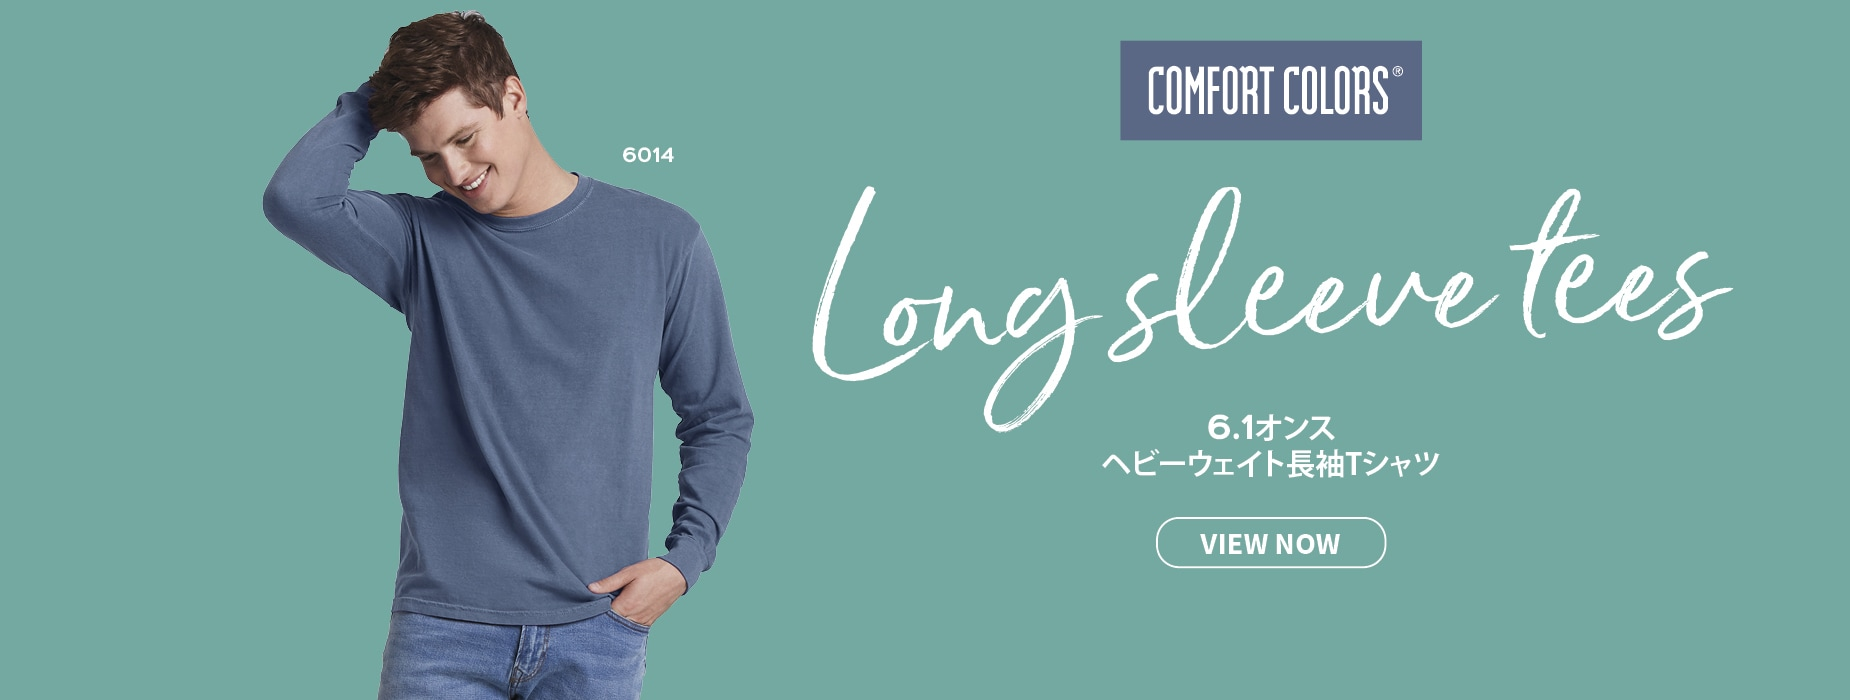 View now Comfort Colors® Japan 6014 Comfort Colors® Adult Heavyweight LS Tee, ヘビーウェイト長袖Tシャツ | Gildan® Brands Japan